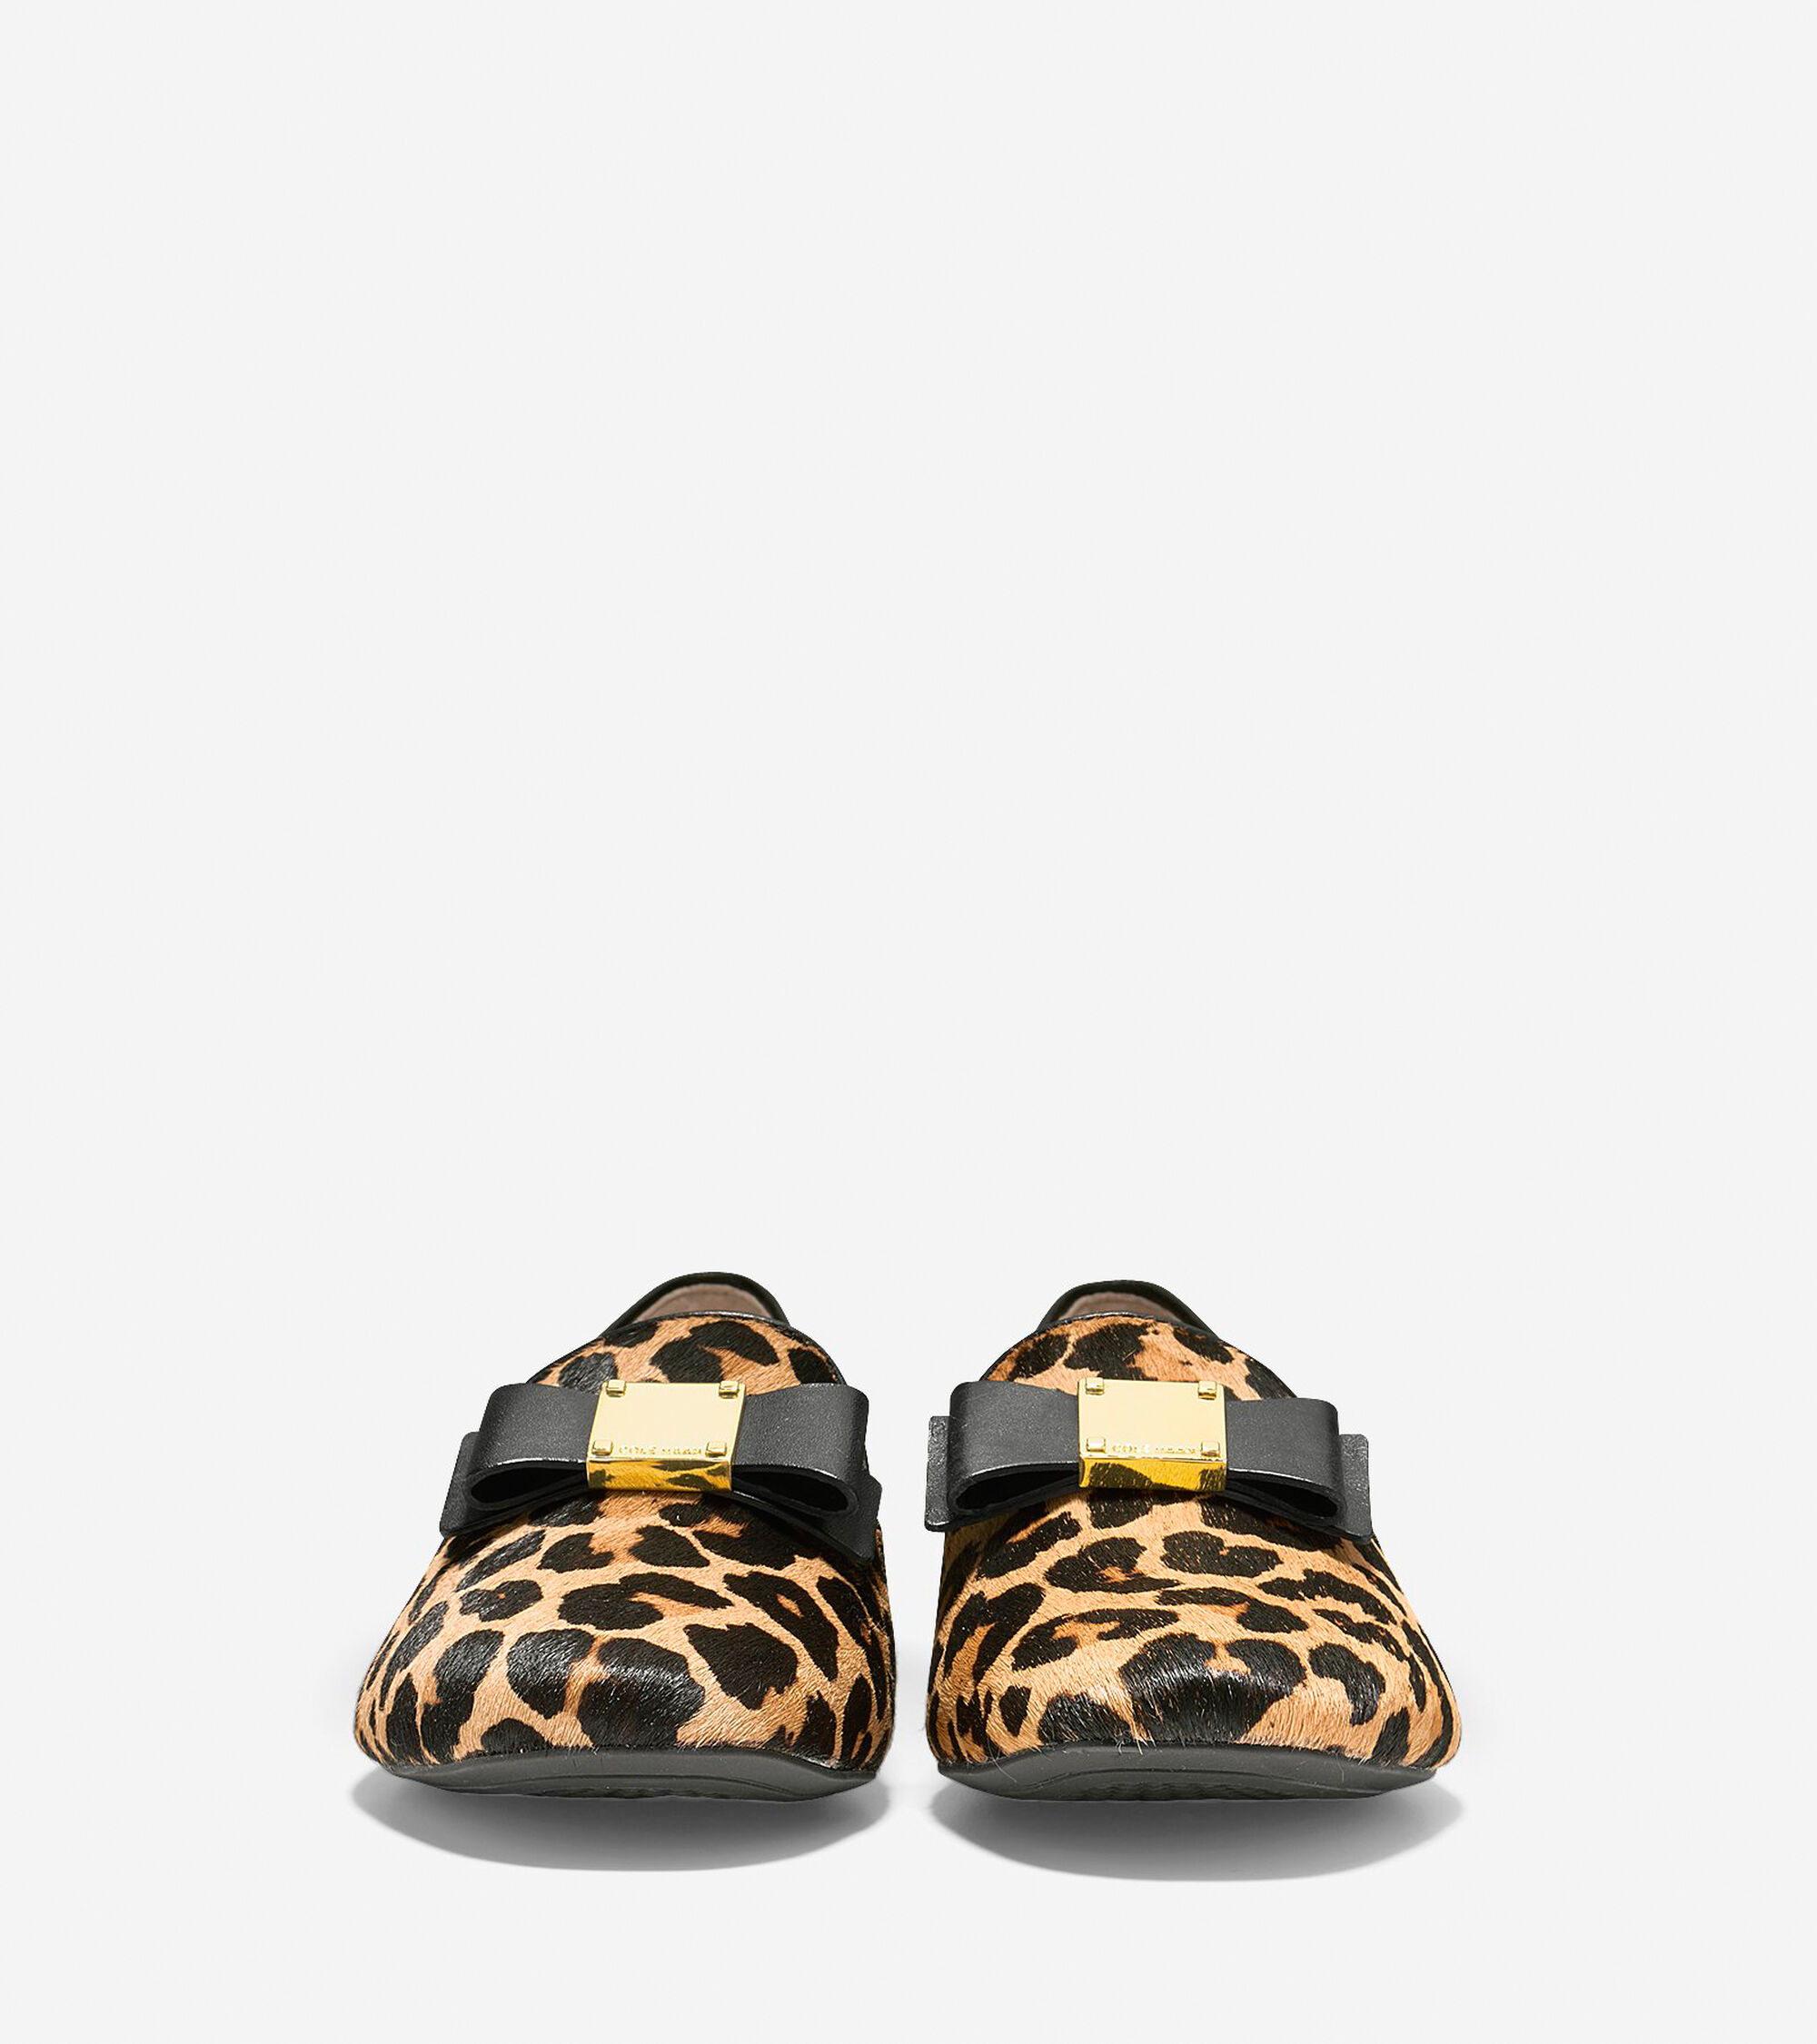 b52317e7683 Women s Tali Bow Loafers in Ocelot Print Haircalf